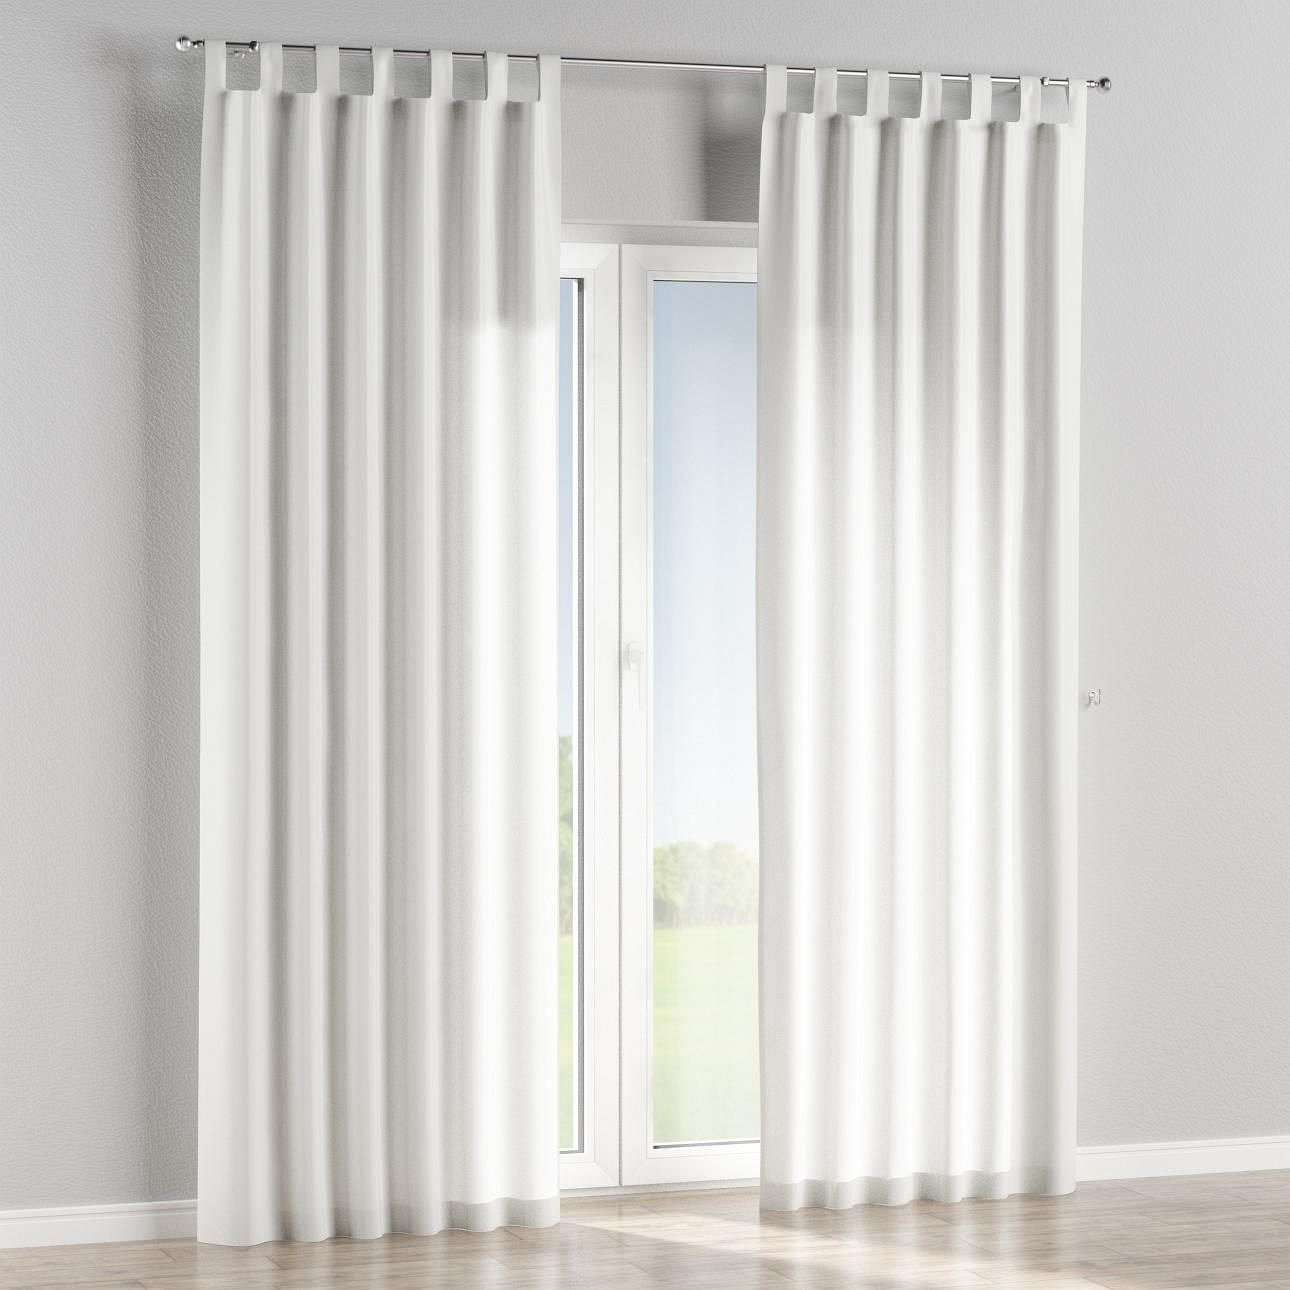 Tab top curtains in collection SALE, fabric: 136-60